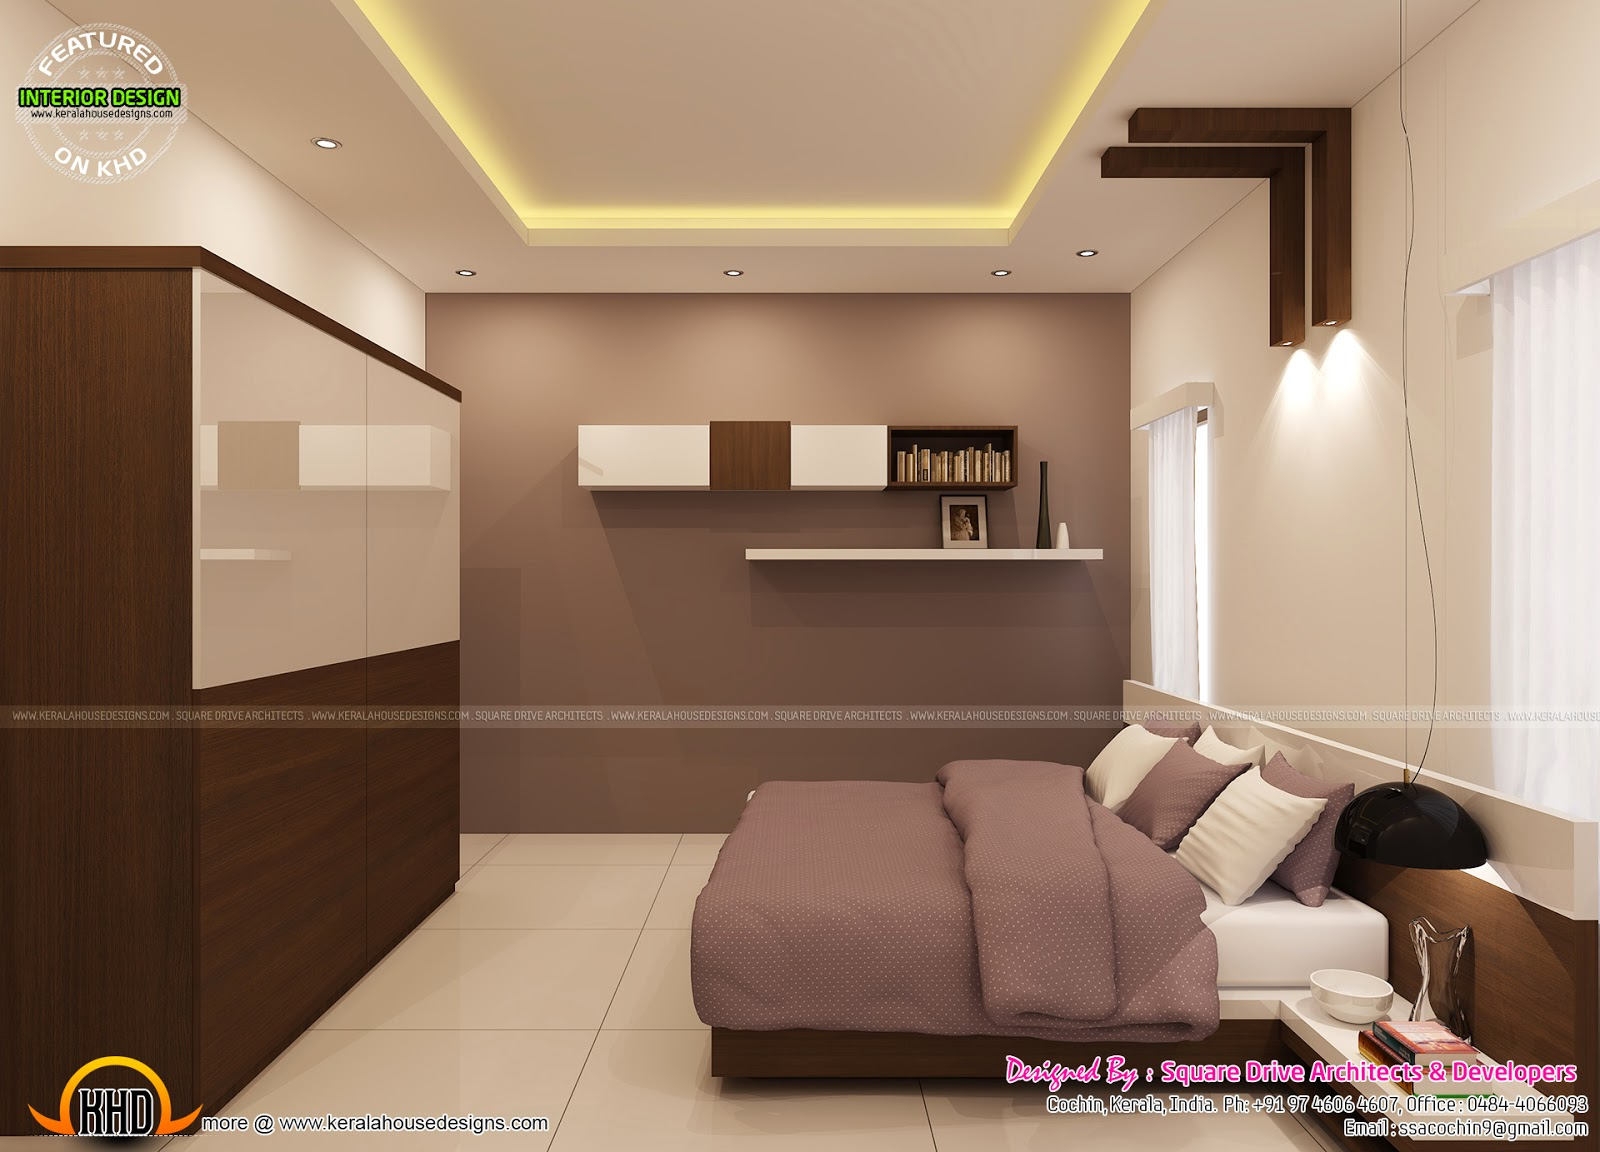 Bedroom interior decoration kerala home design and floor for Home interior design room